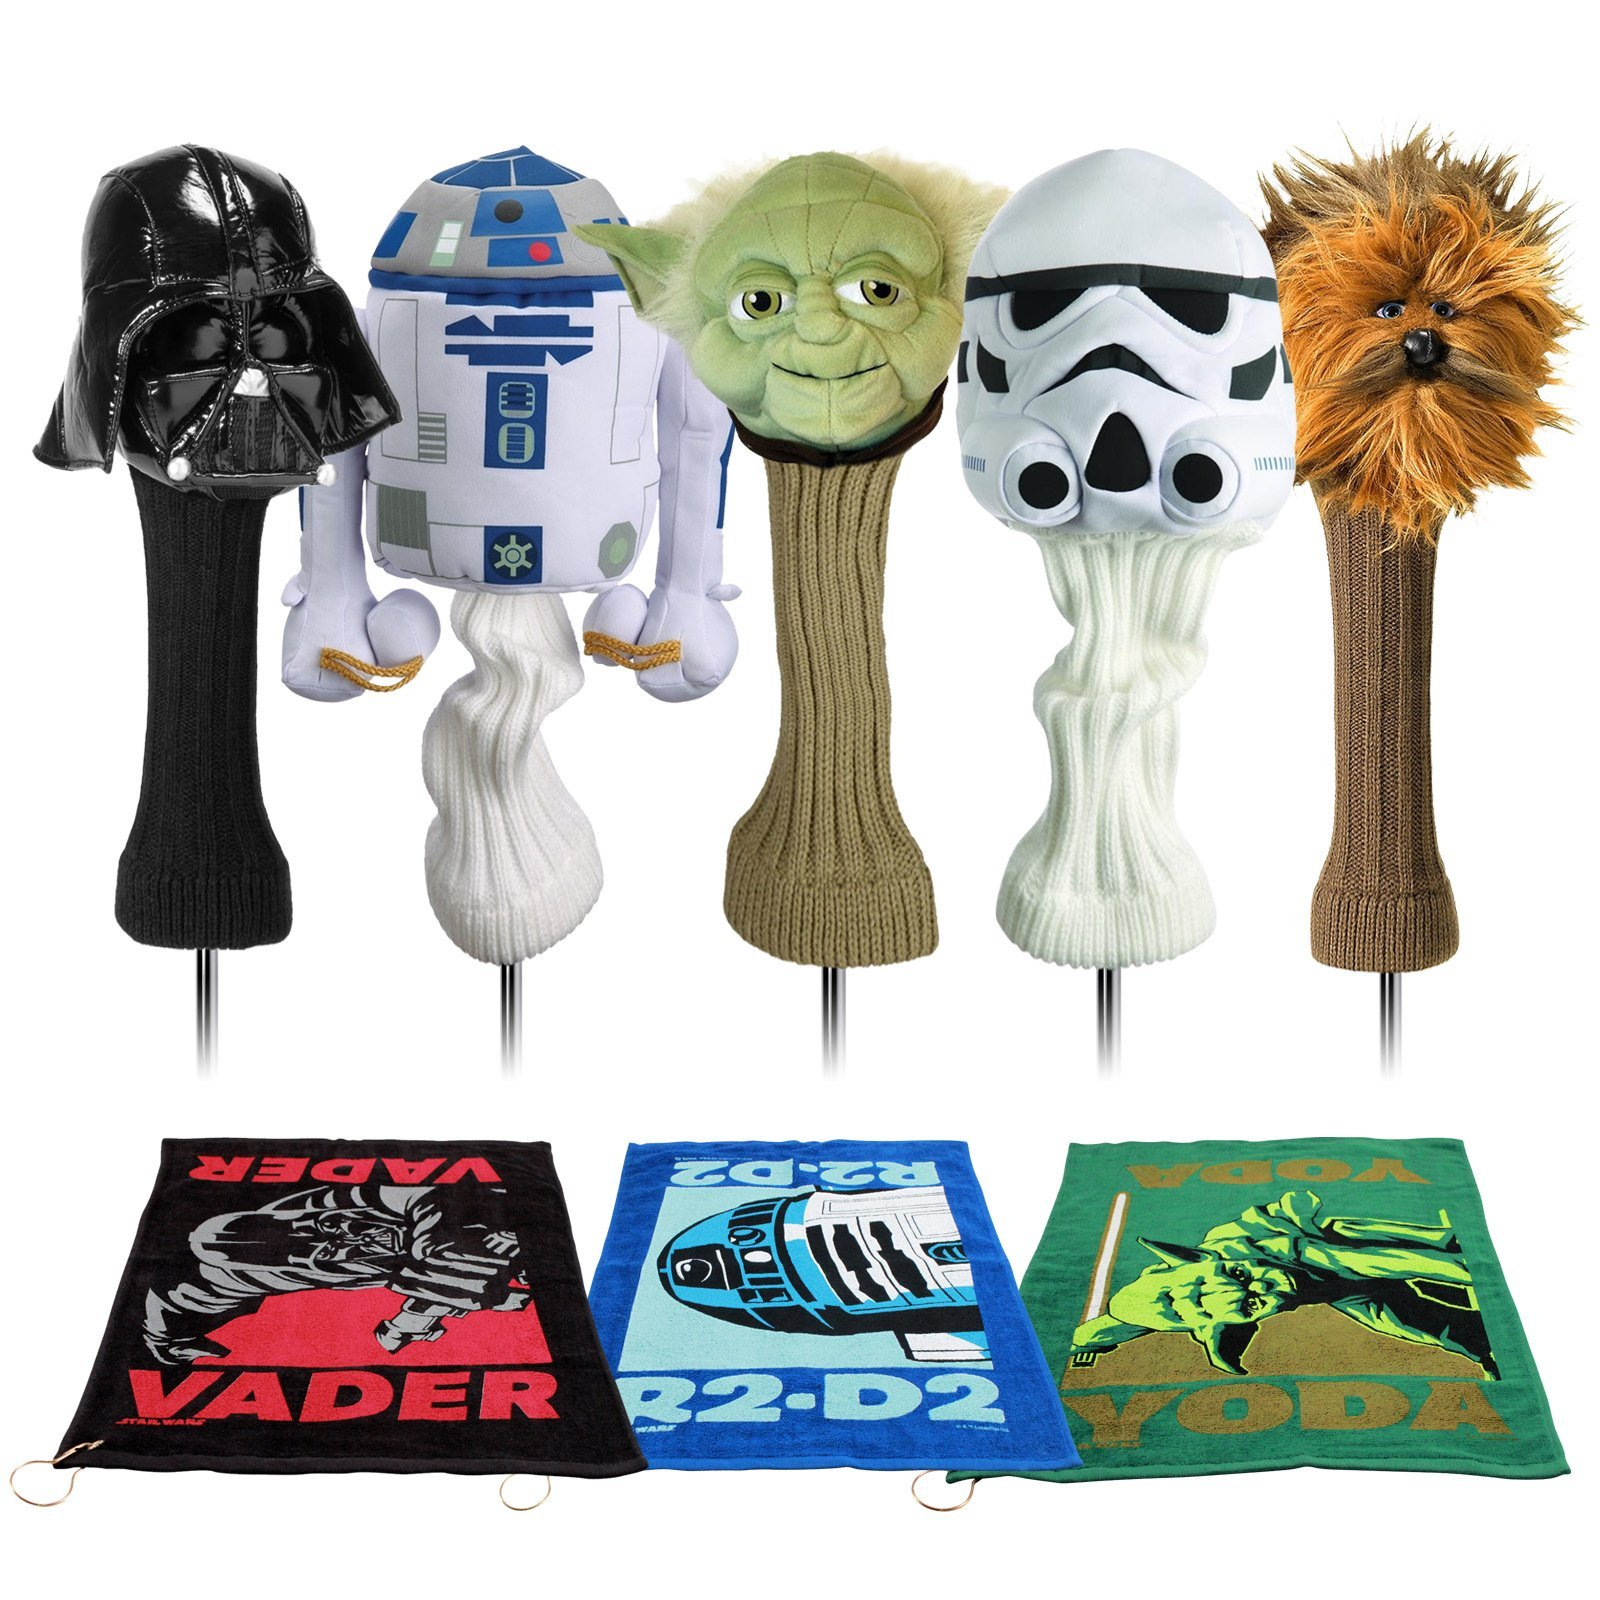 Star Wars Classic Trilogy Set Golf Head Covers & Towel Set